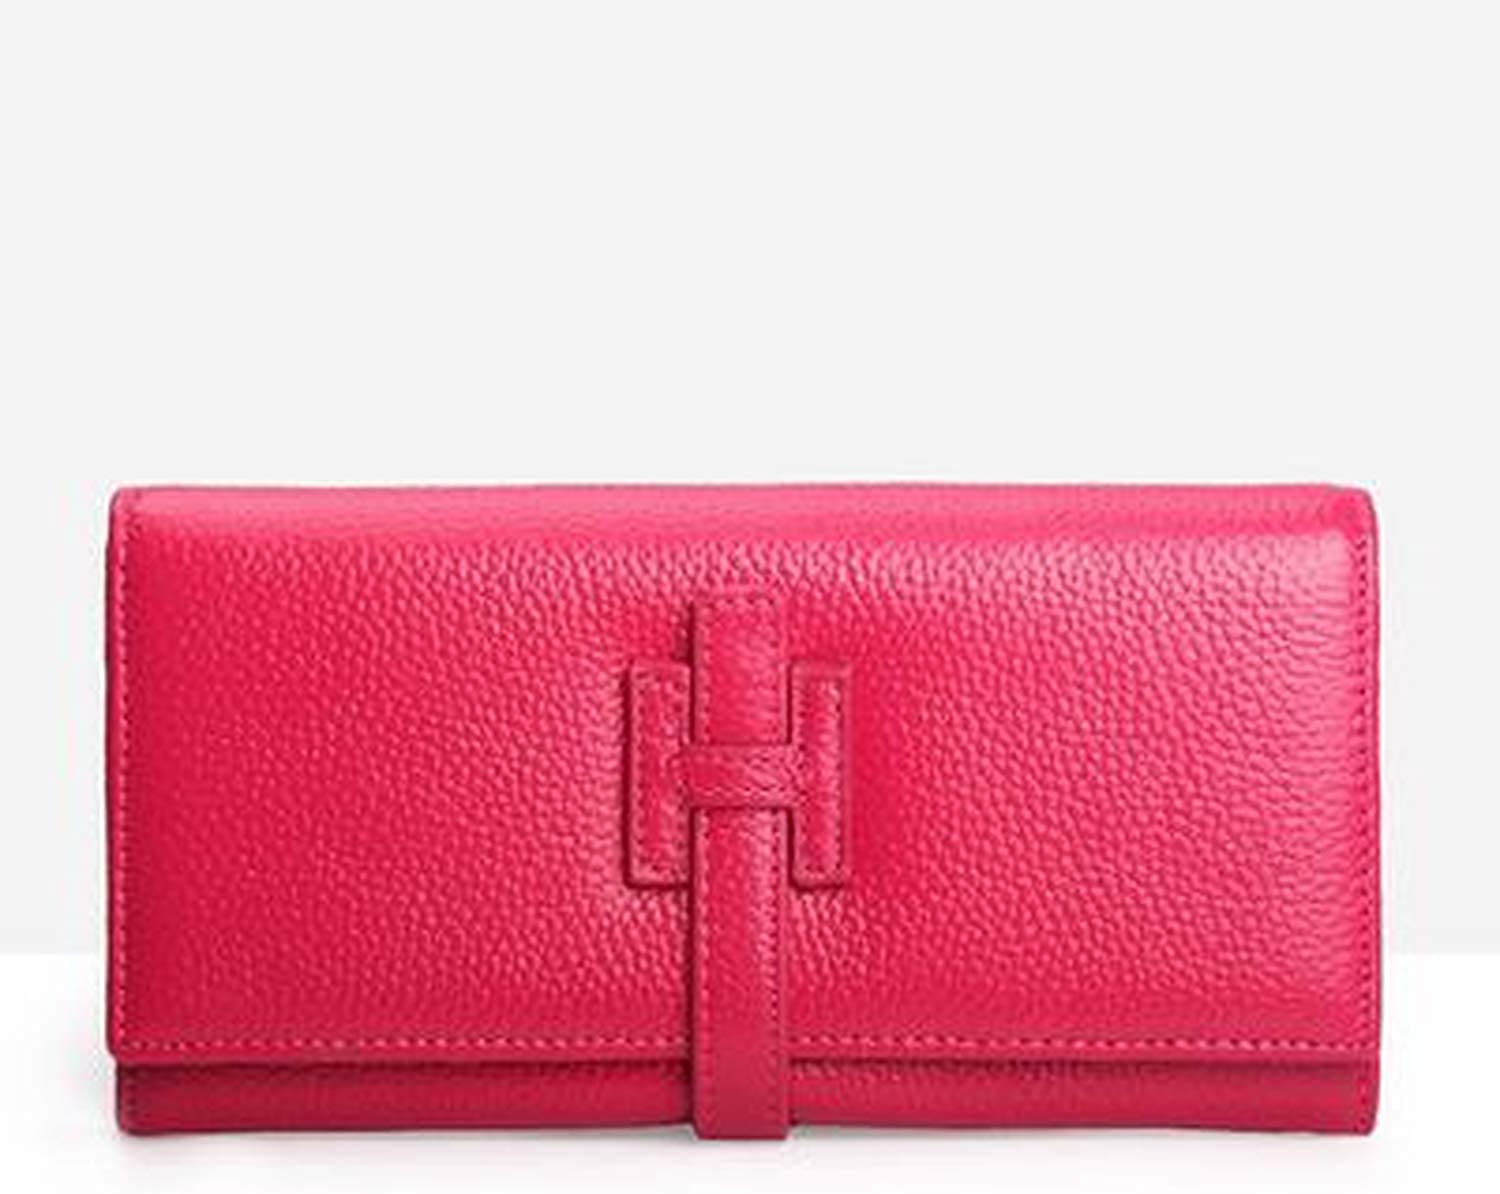 Designer Wallets Famous Brand Women Wallet 2019 Luxury Female Wallet Genuine Leather Ladies Purse Money Bag Red Wallet Rose At Amazon Women S Clothing Store,Womens Designer Baseball Caps